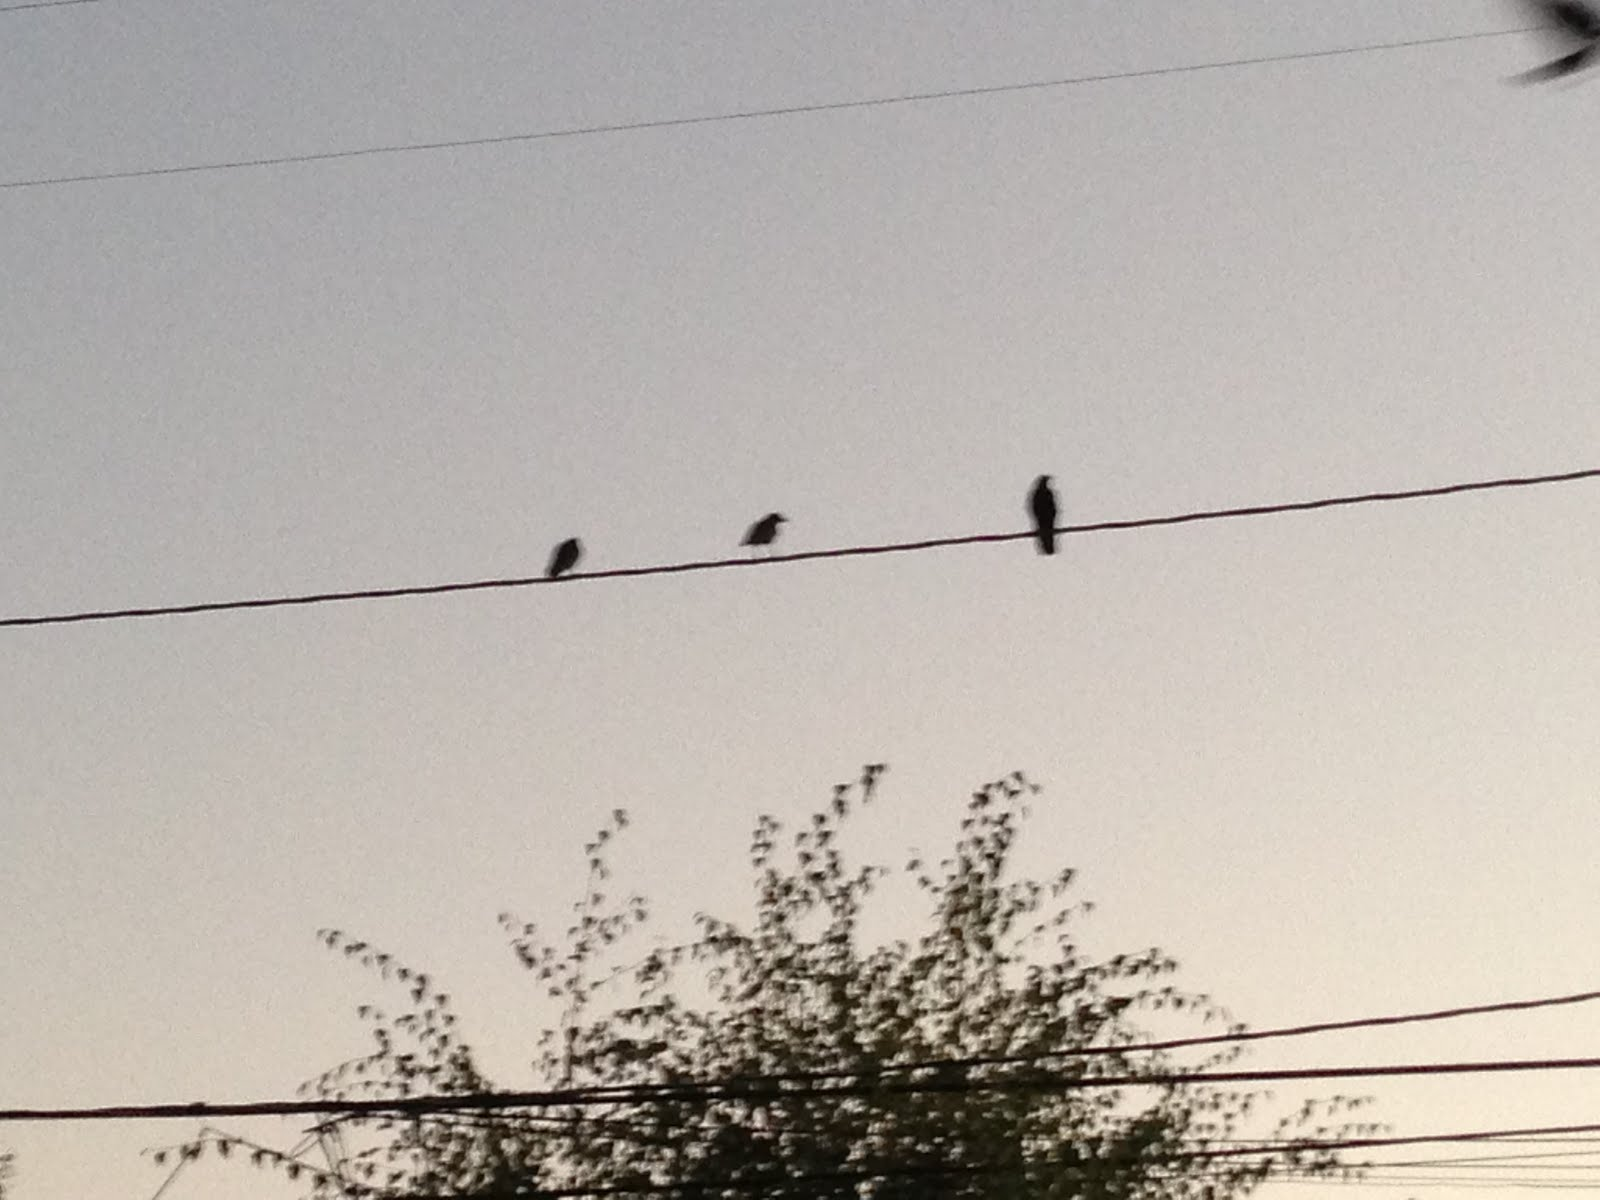 The birds on the wire